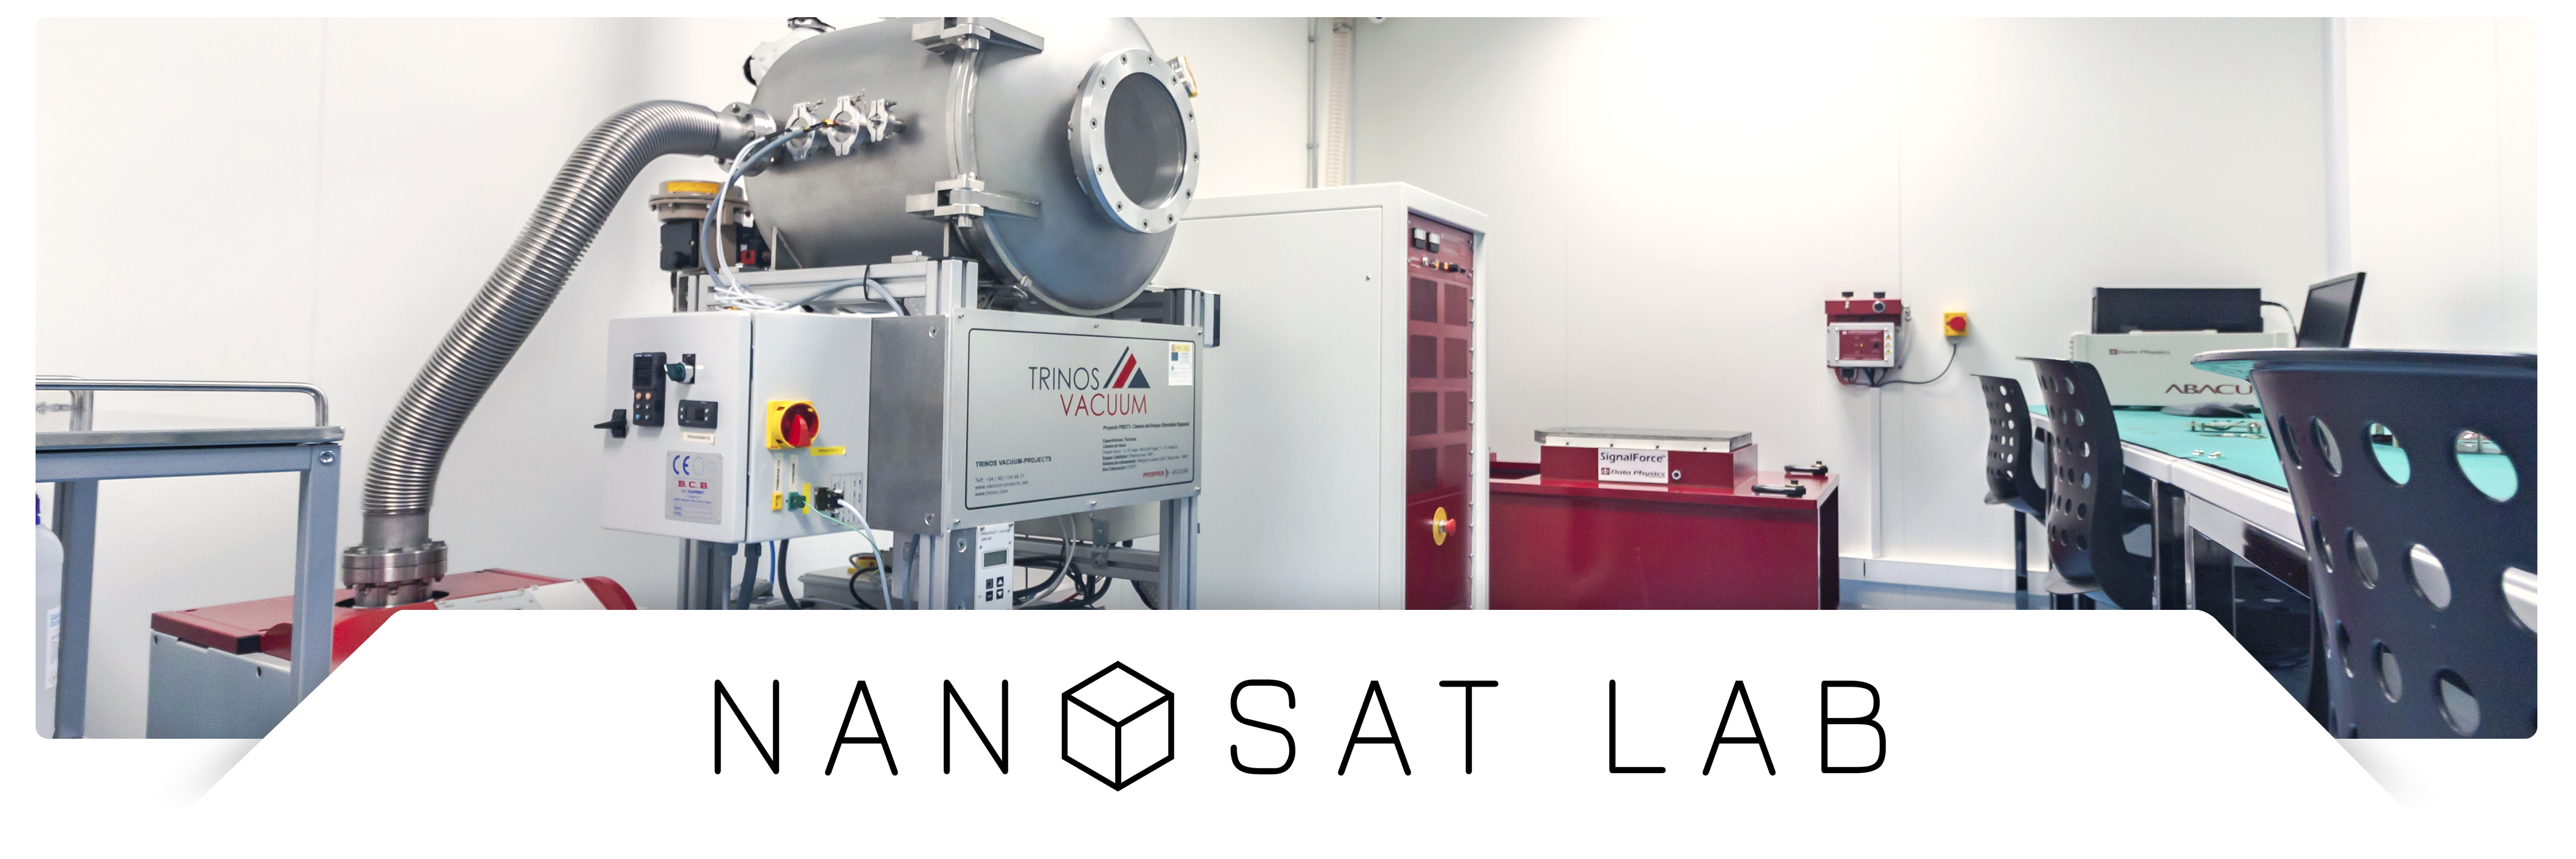 Panorama NanoSat Lab with logo and drop shadow